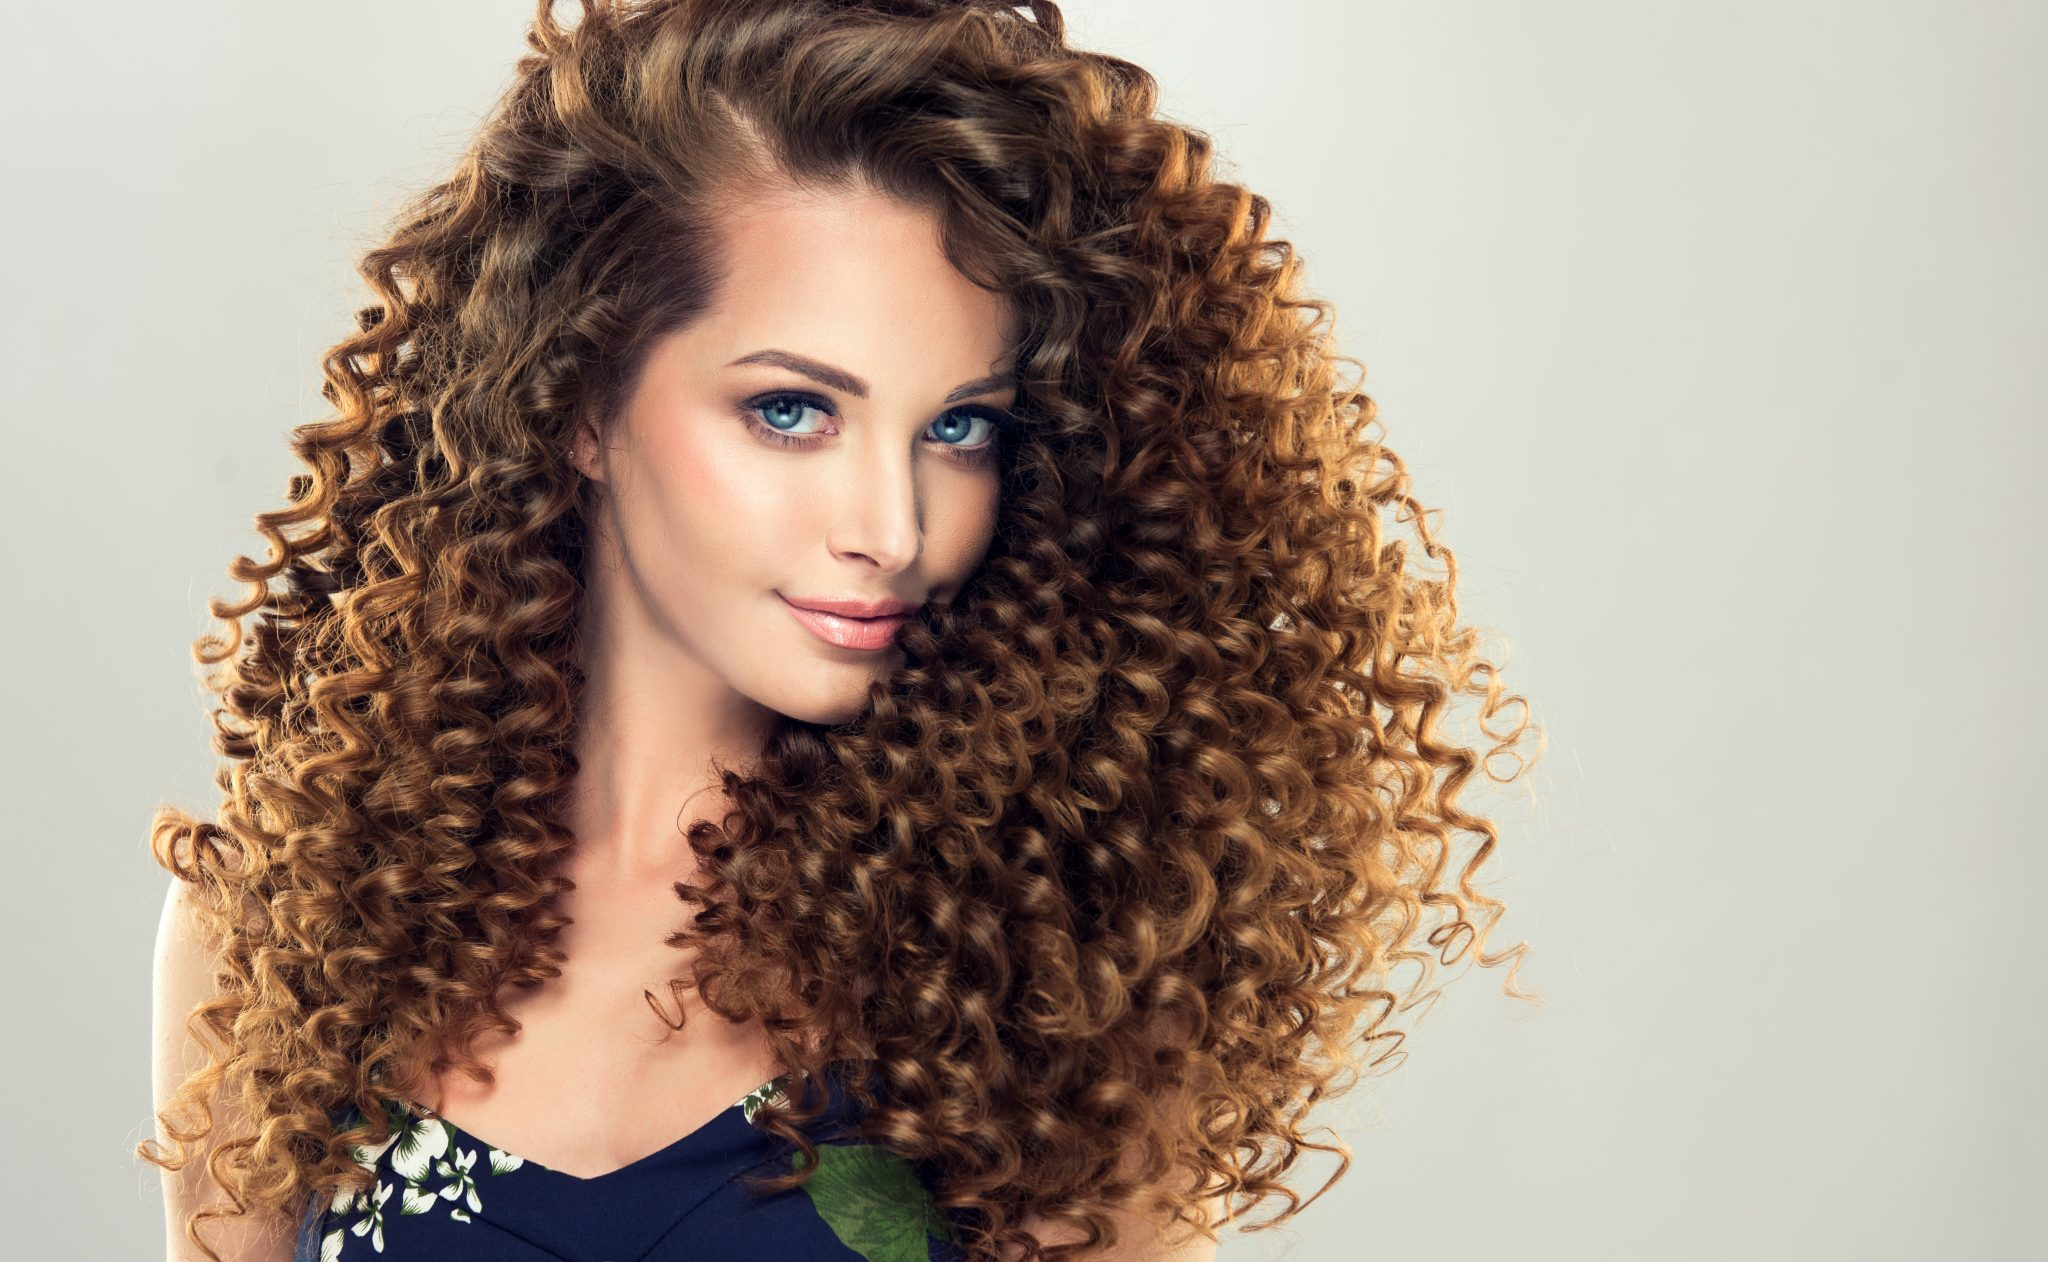 woman with very curly hair